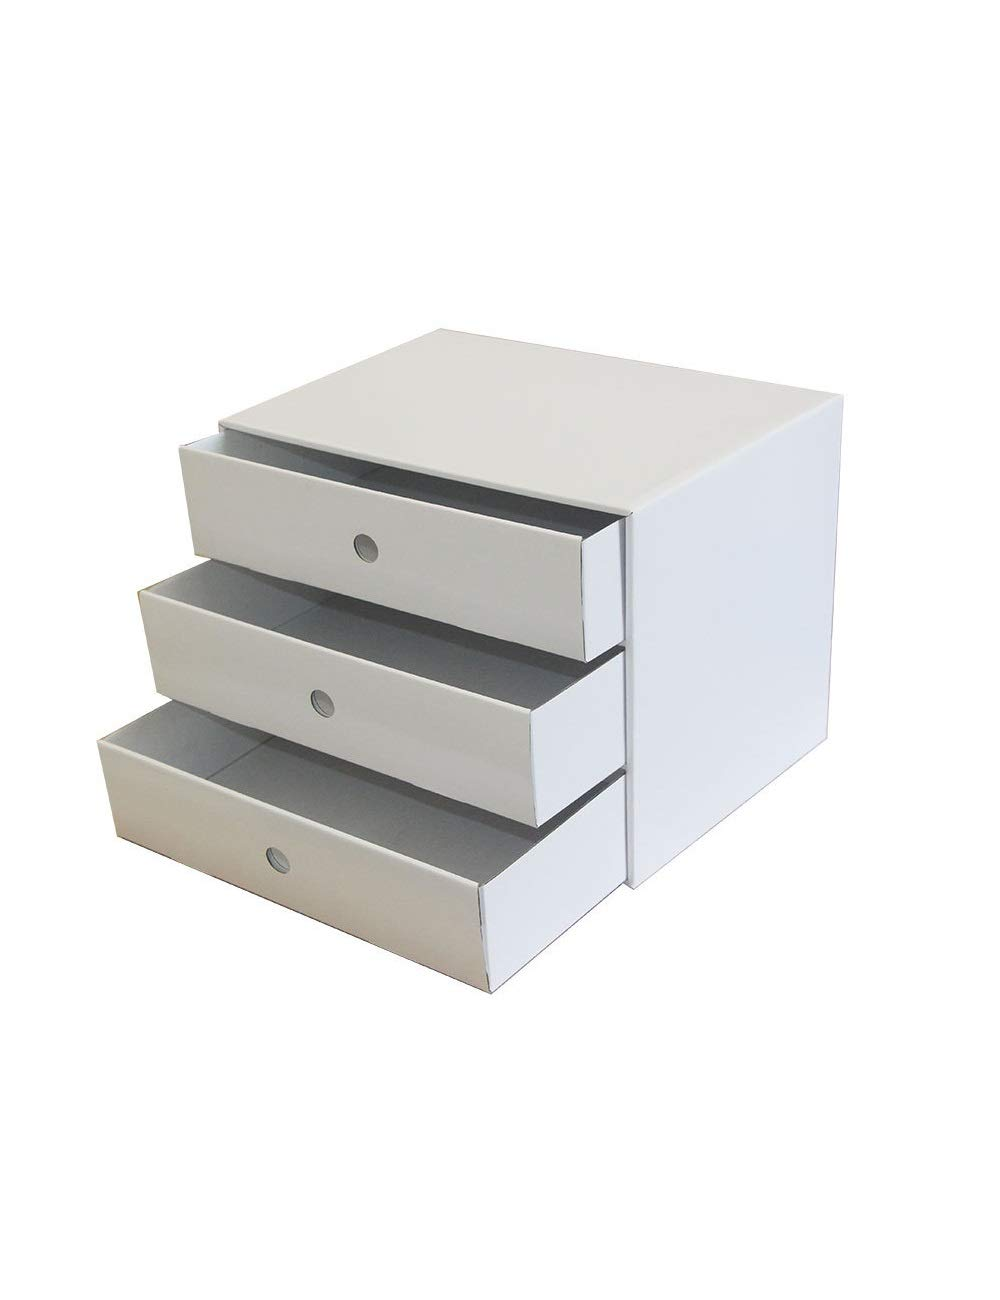 File Cabinet Drawer Showcase Multi-Function Cabinet Desktop Archive Storage Manager 3 Drawers White Office File Storage Cabinet Storage Box Filing cabinets